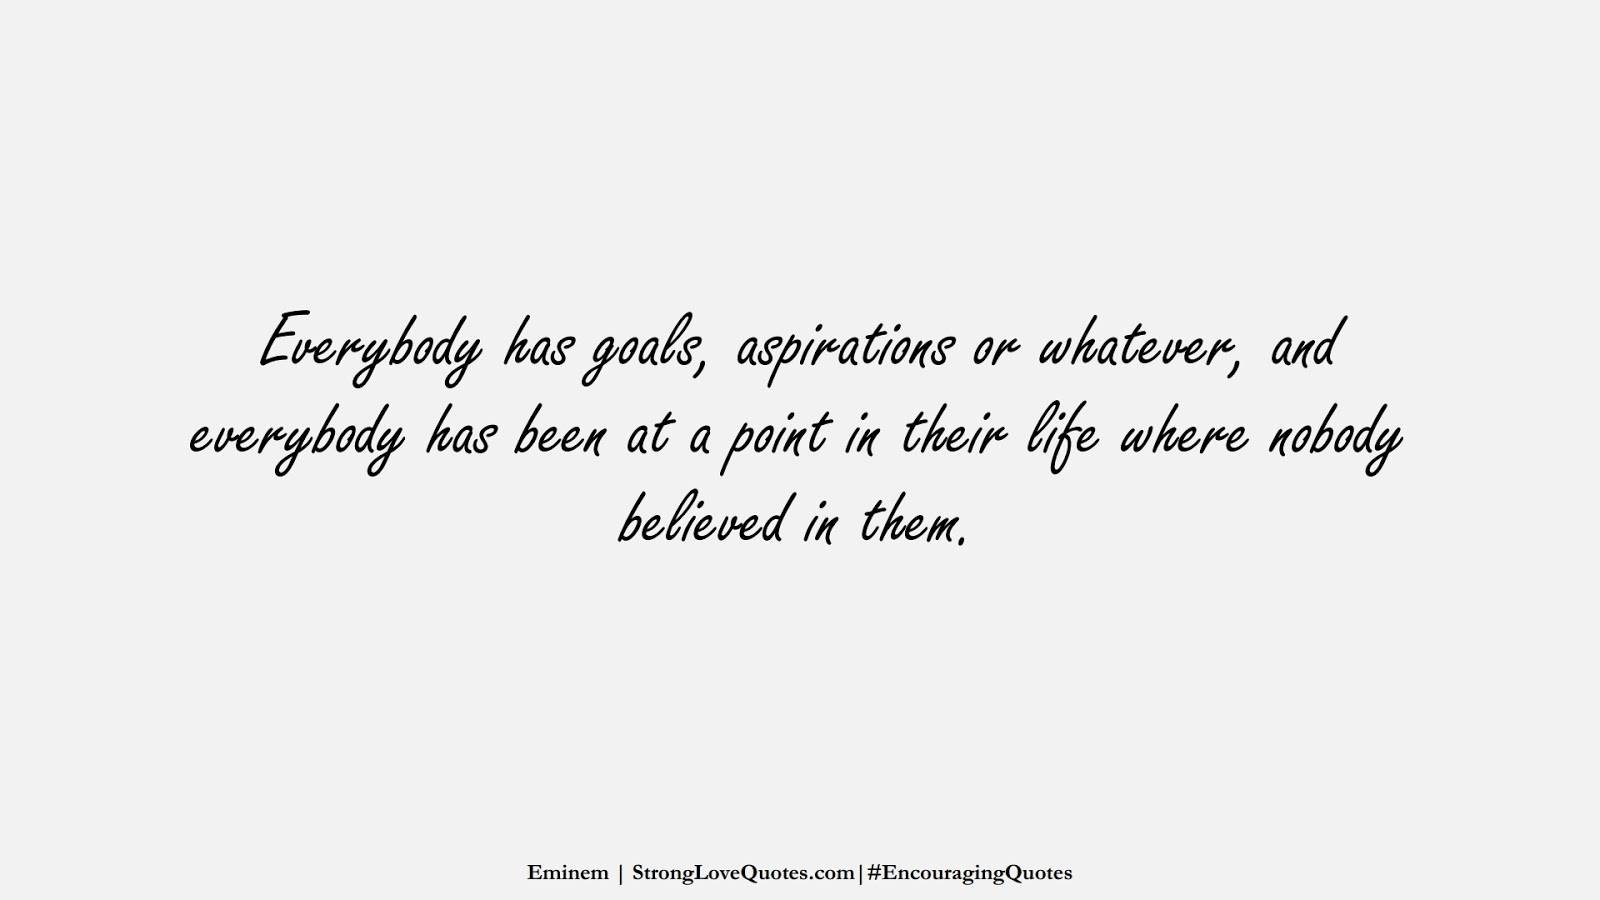 Everybody has goals, aspirations or whatever, and everybody has been at a point in their life where nobody believed in them. (Eminem);  #EncouragingQuotes